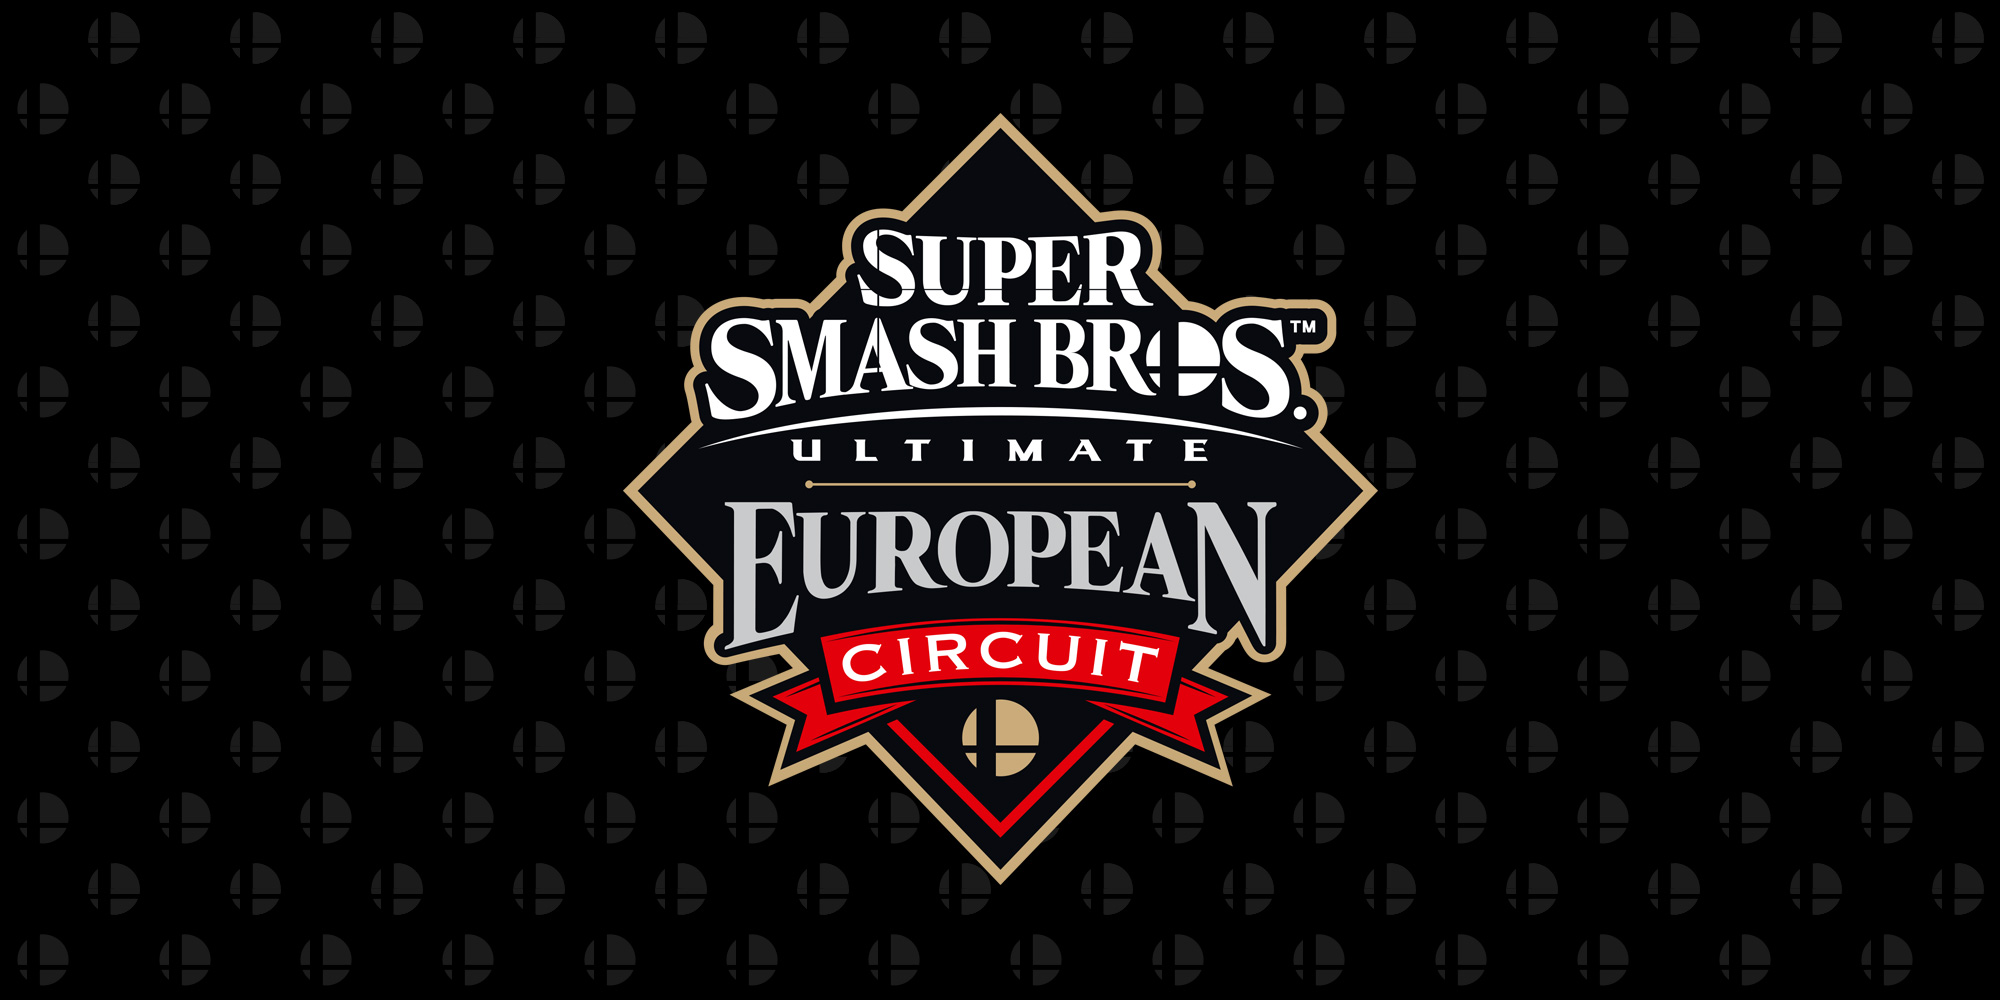 O Glutonny foi o grande vencedor do terceiro torneio do Super Smash Bros. Ultimate European Circuit!